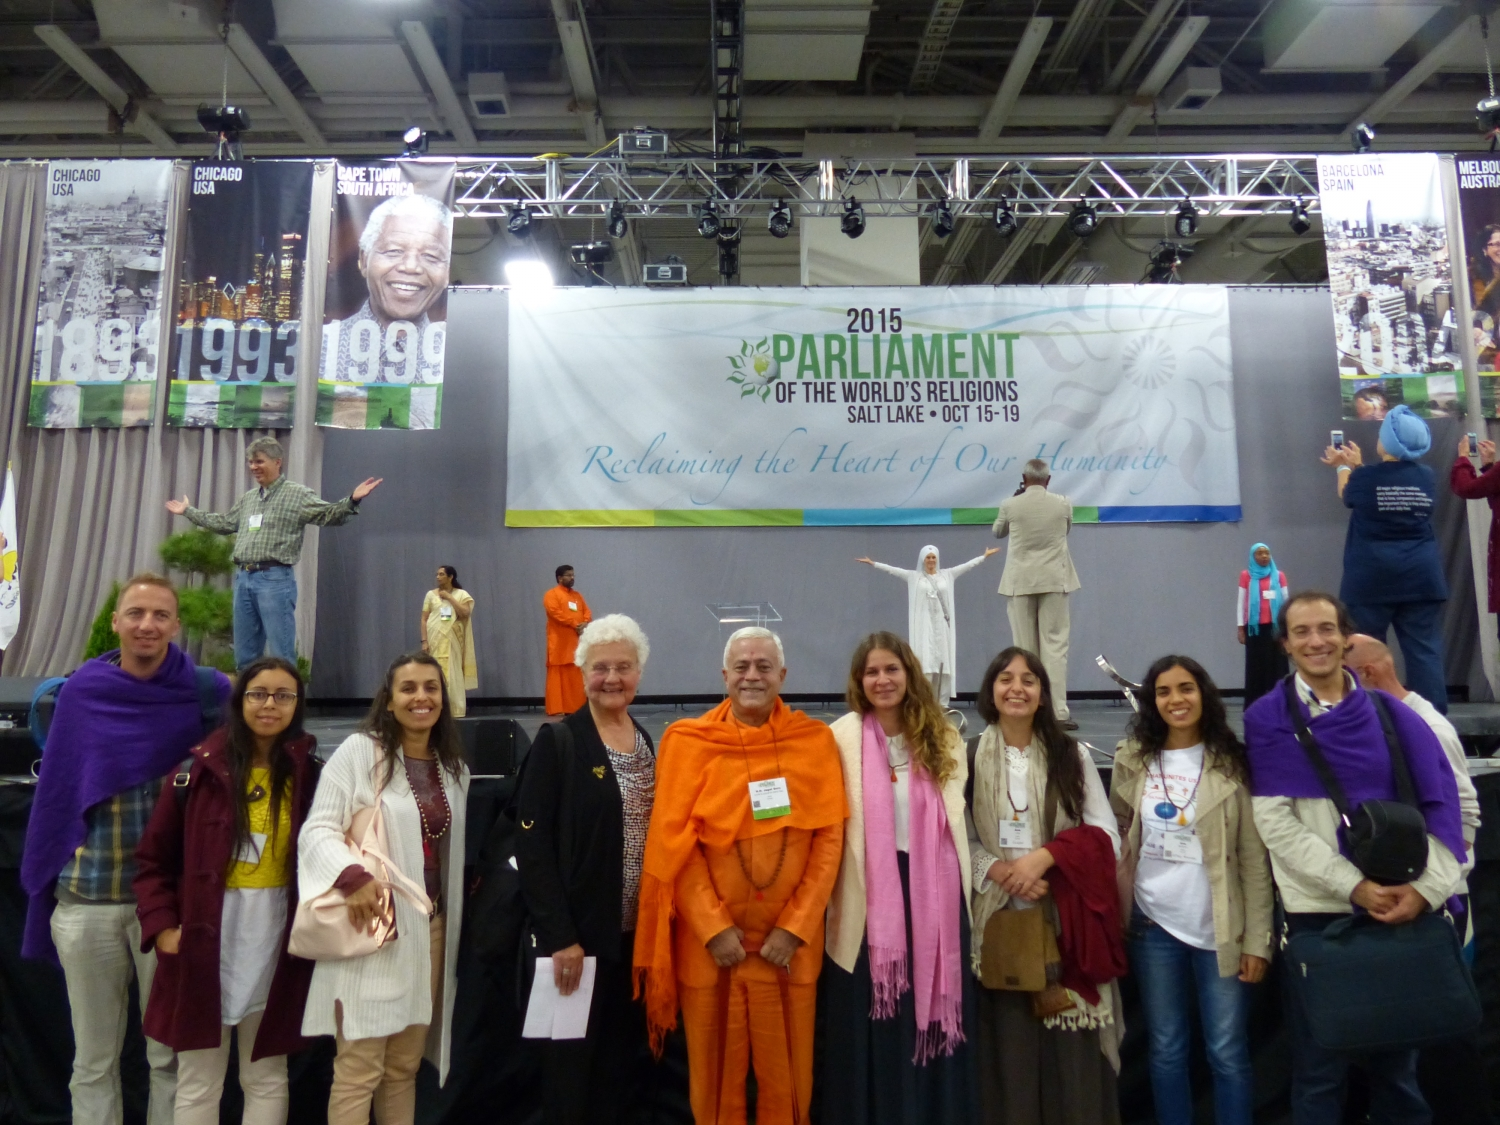 Parliament of the World's Religions 2015 - USA, Salt Lake City